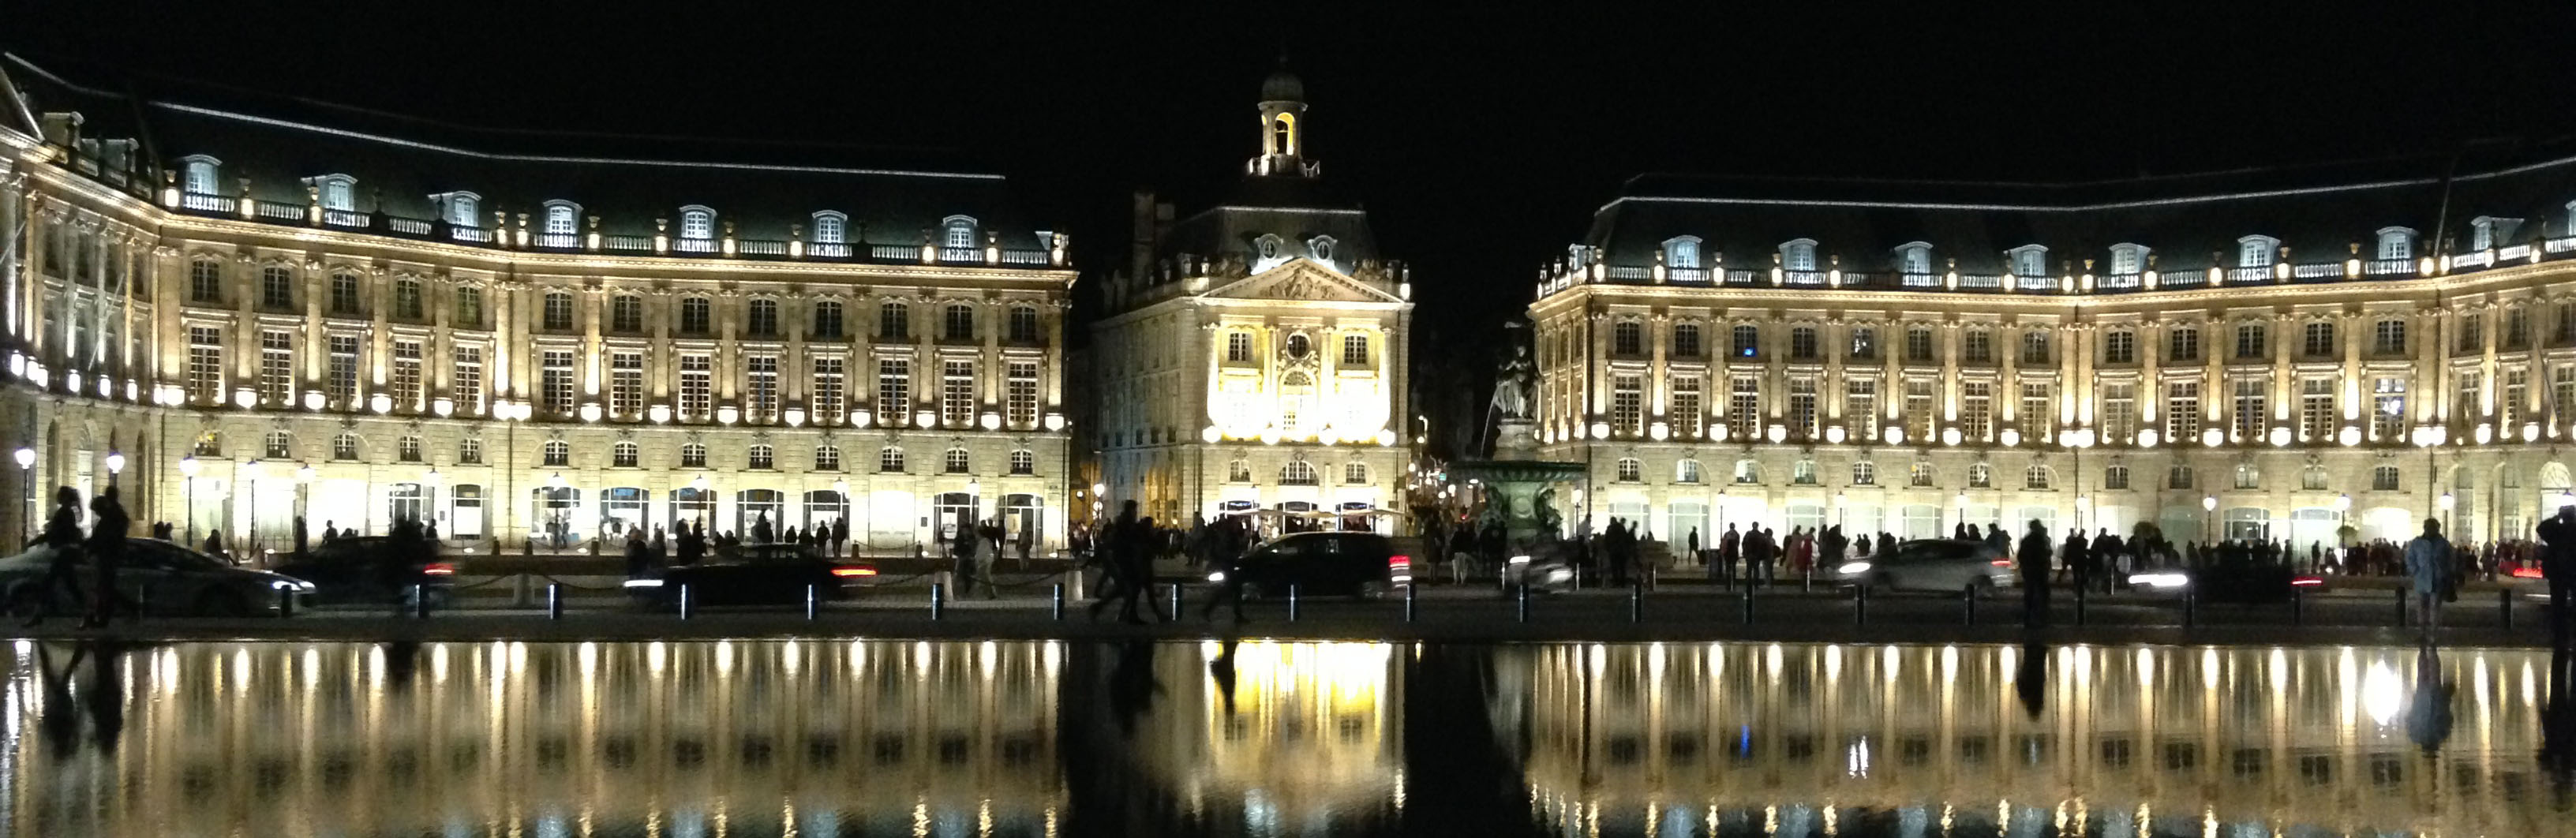 bordeaux-photo-bourse